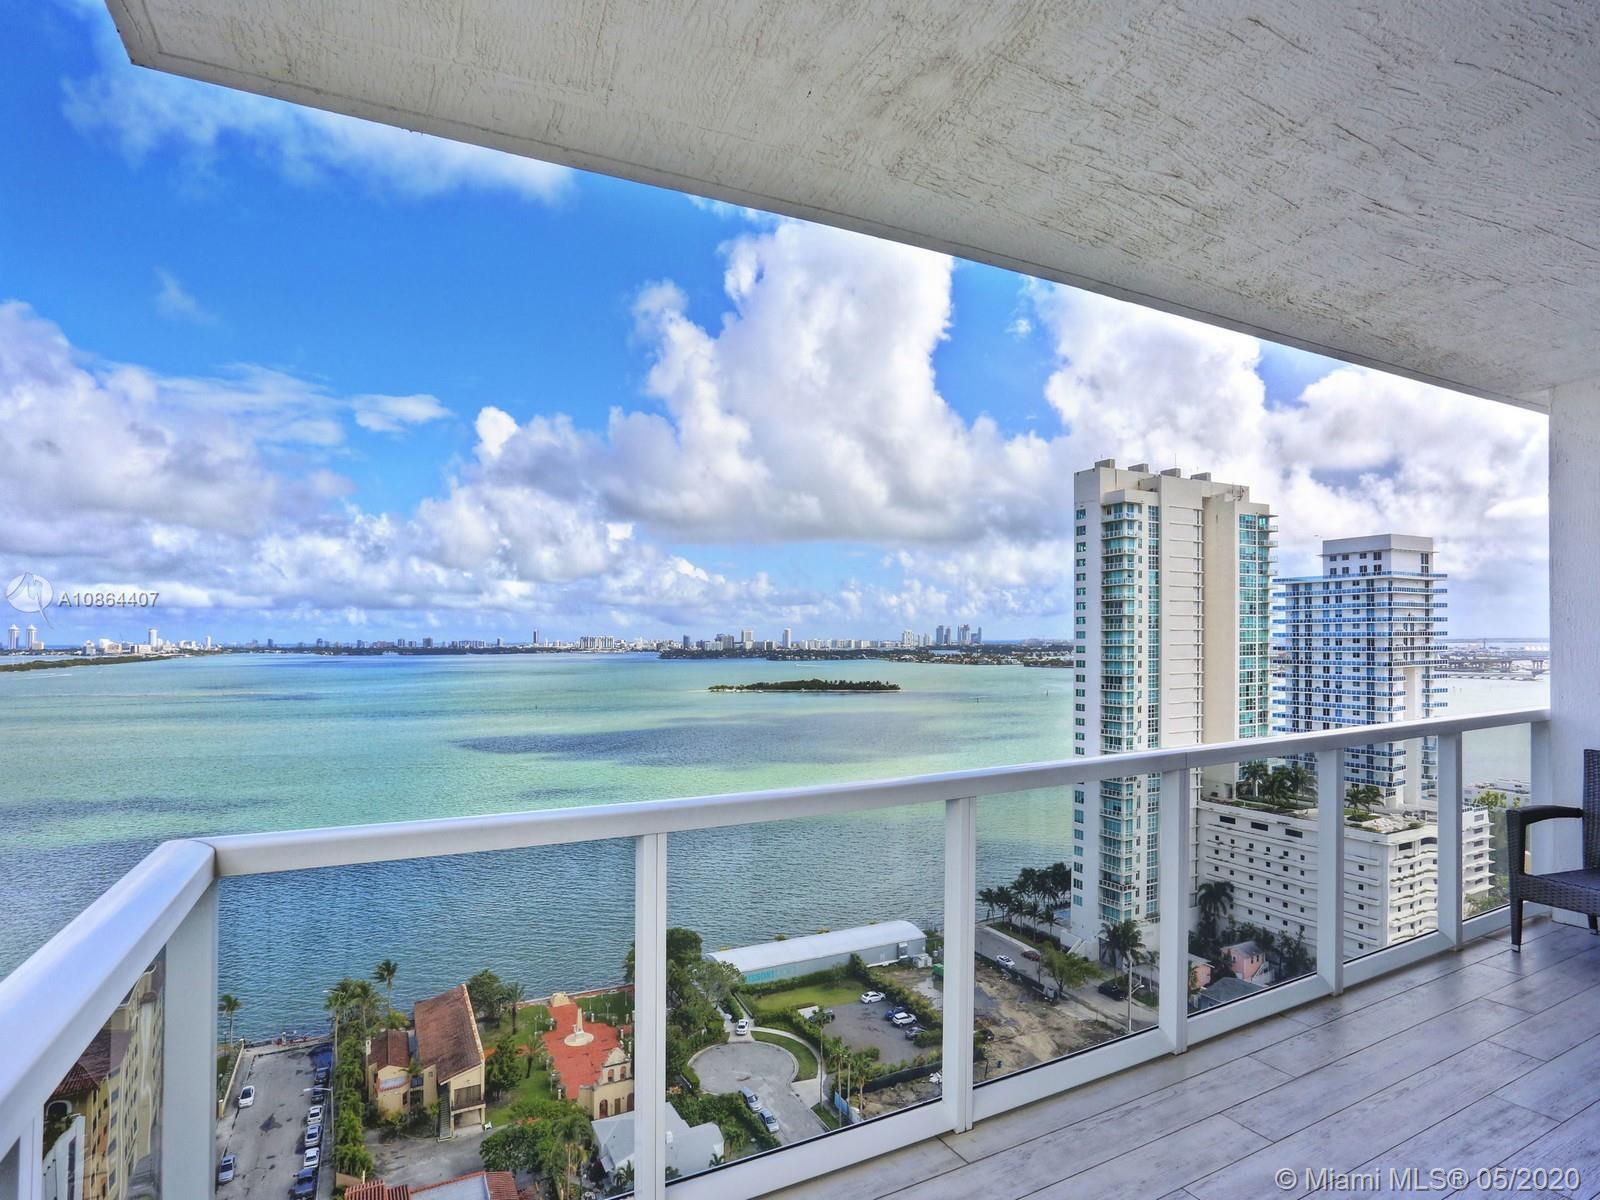 This 22nd floor residence of Bay House, located in Edgewater East, offers stunning, wrap-around view